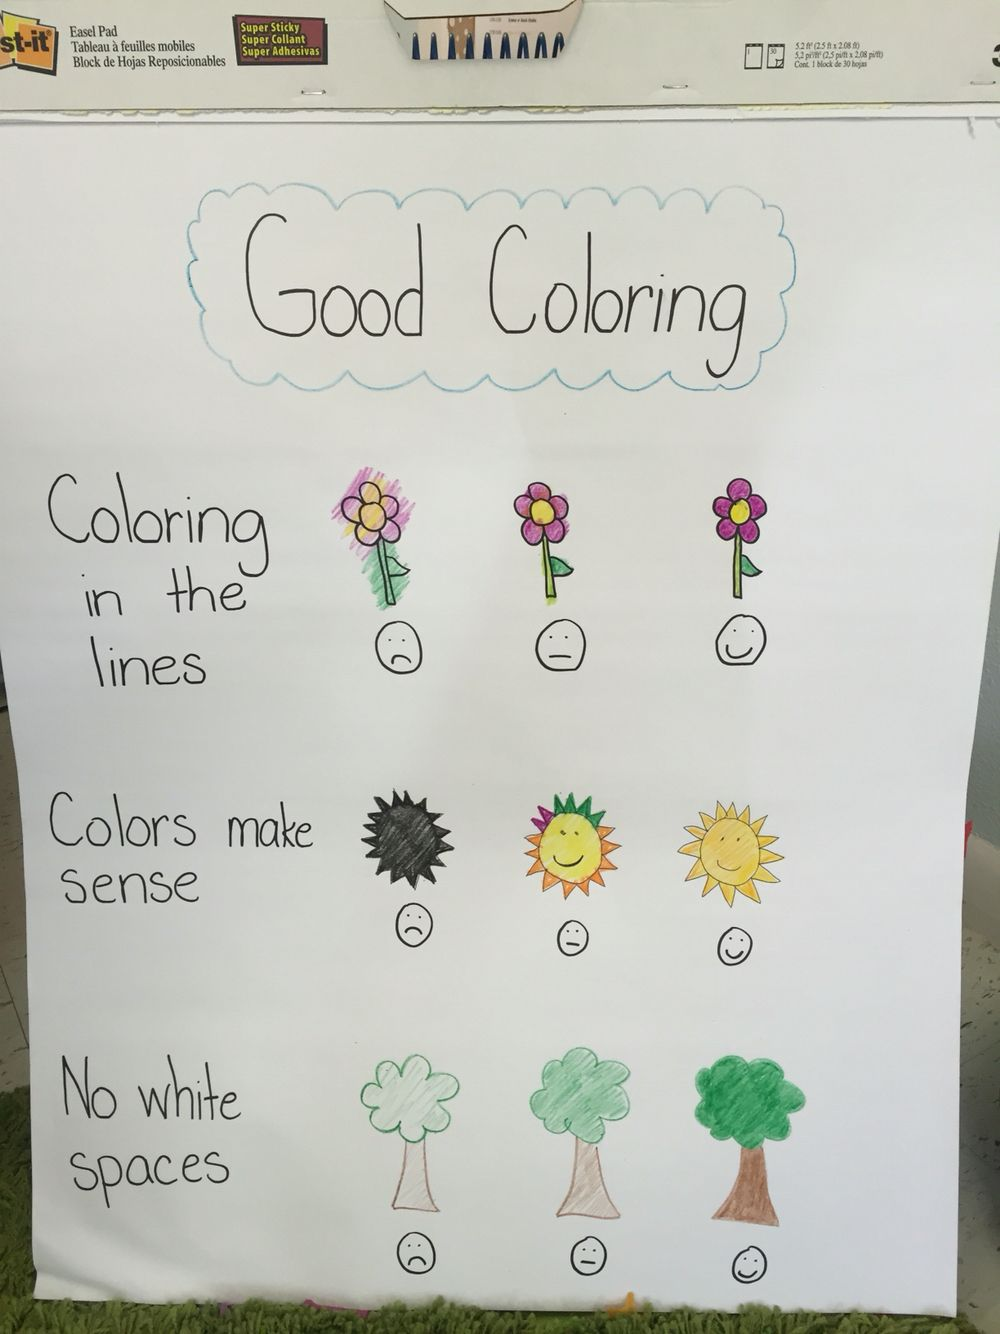 Mrs. Connell's good coloring chart for kindergarten